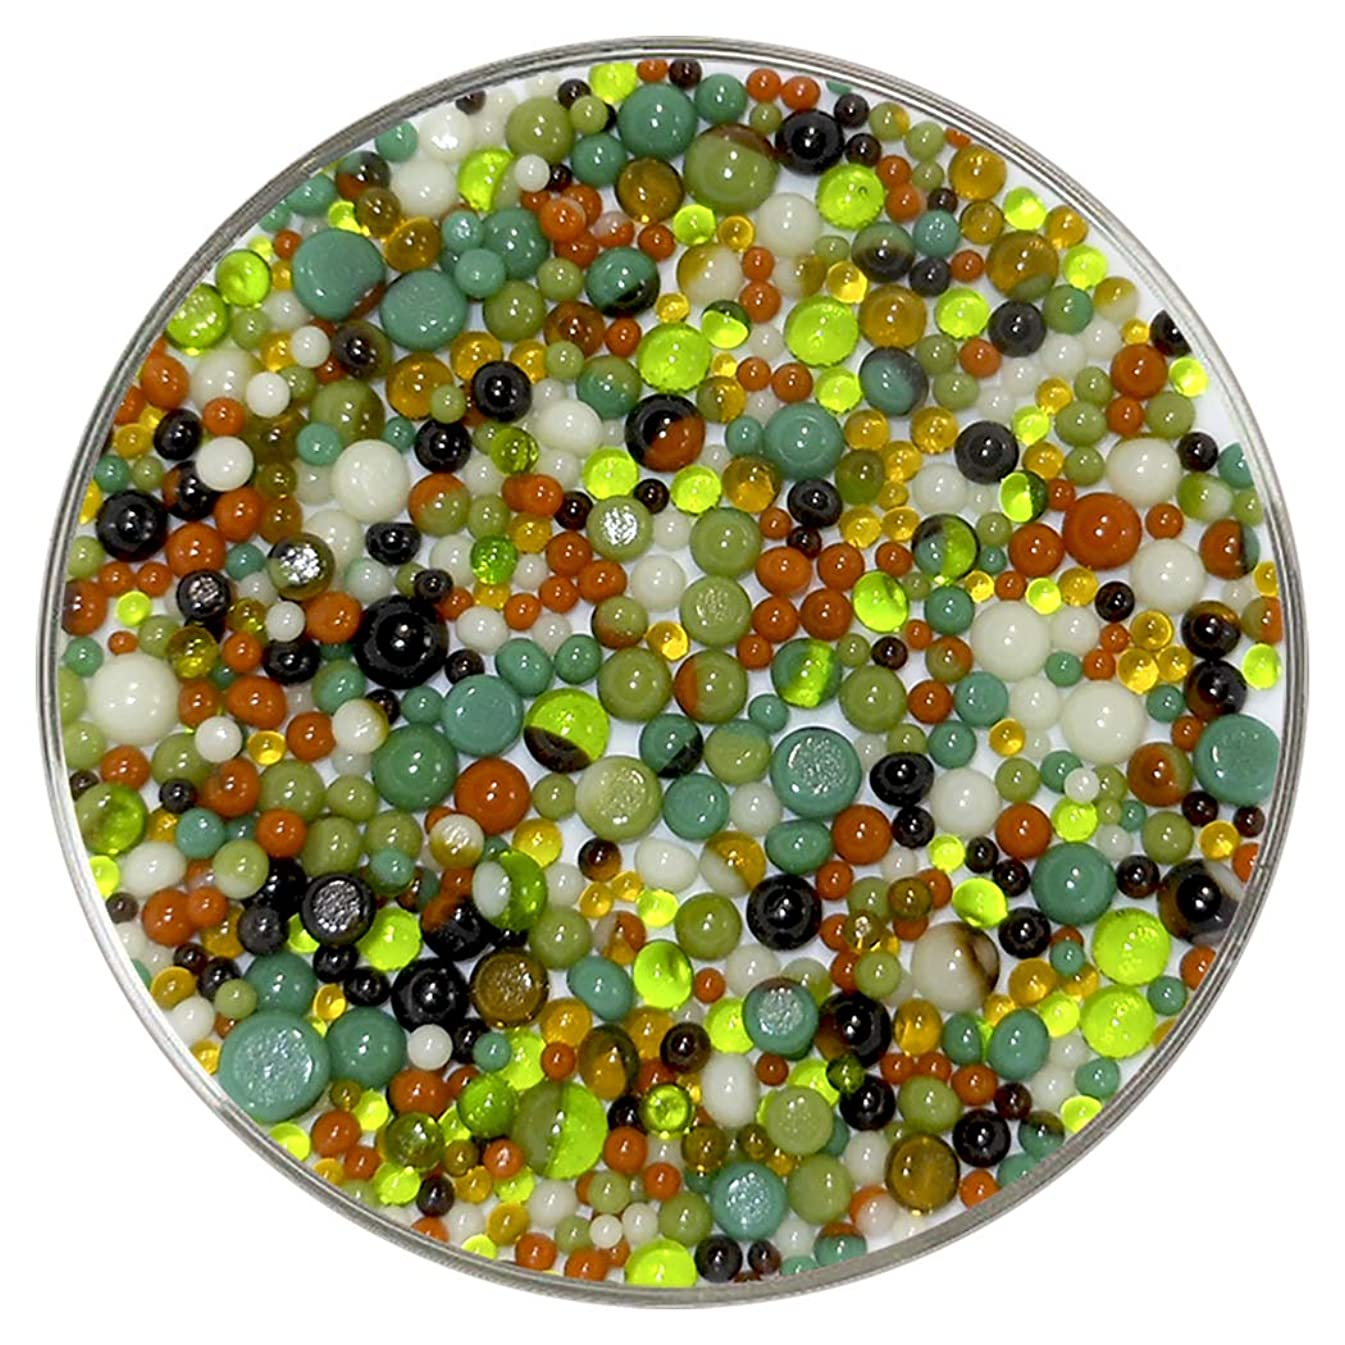 Rain Forest Designer Collection Mix Frit Balls - 90COE, New Larger 1oz Size - Made from Bullseye Glass by New Hampshire Craftworks